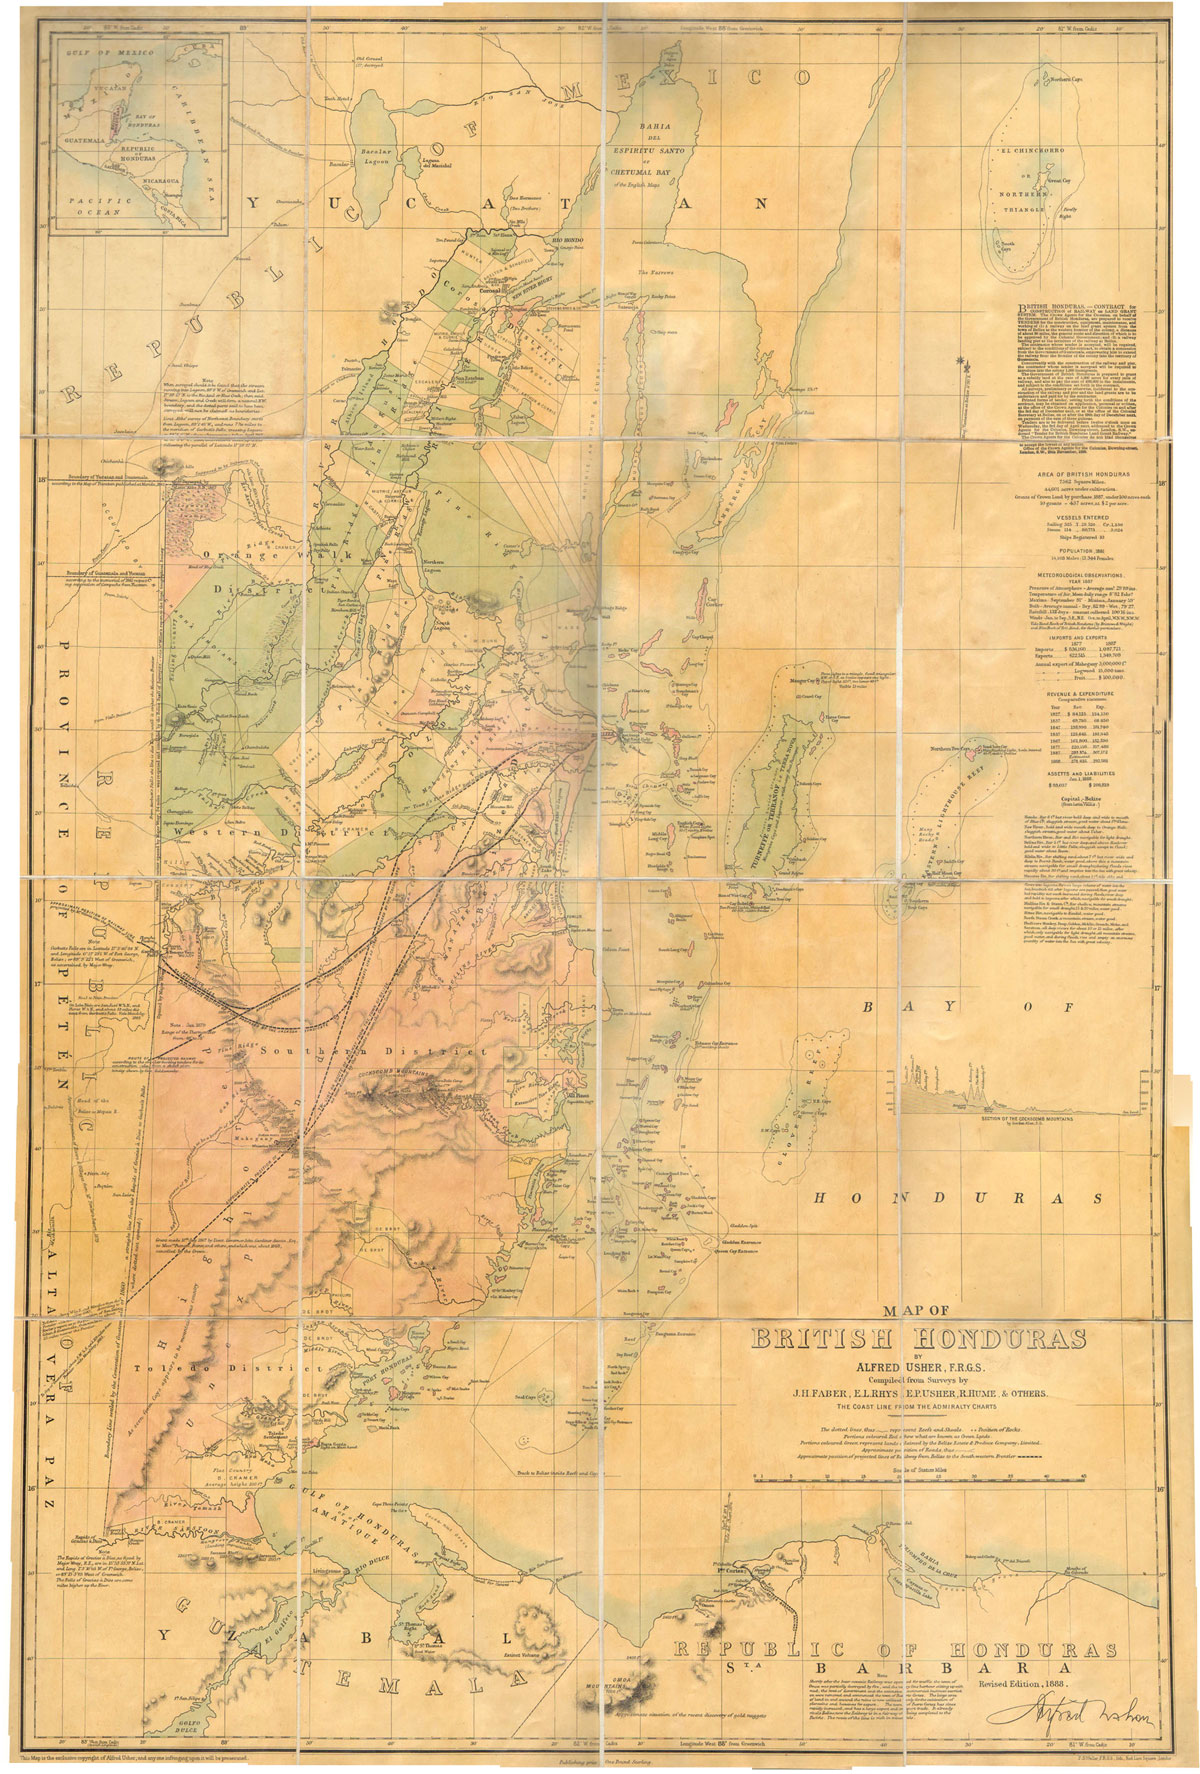 USHER A. Map of British Honduras. - Compiled from Surveys by J.H. Faber, E.L. Rhys, E.P. Usher, & others.  The coastline from the Admiralty Charts.